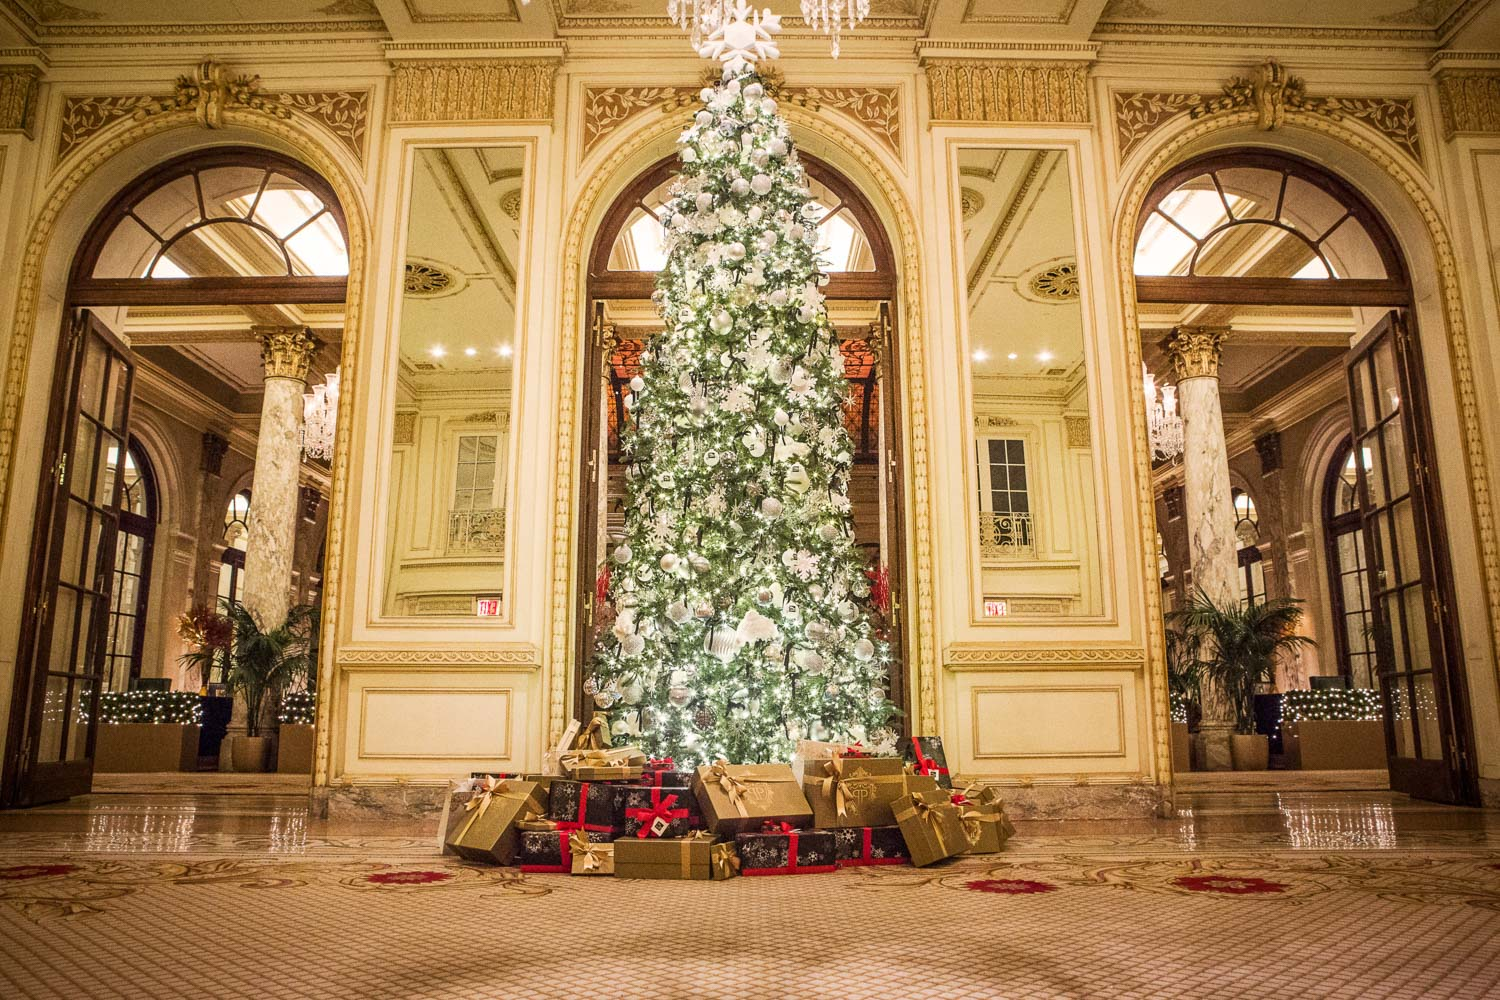 The Plaza Hotel in New York at Christmas